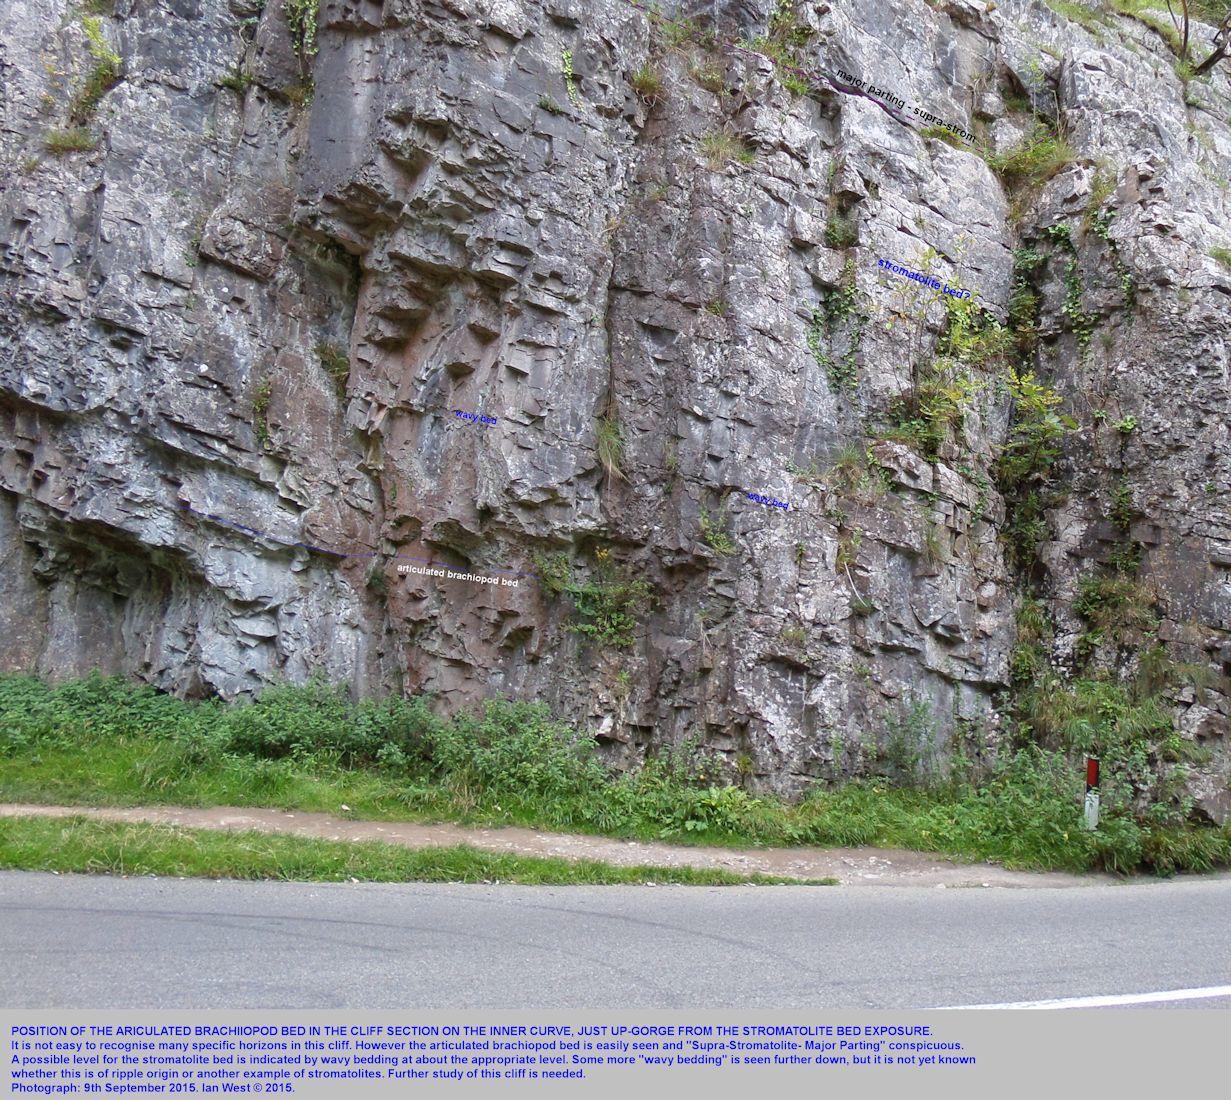 A medium-distance view of the location of the articulated brachiopod bed, Lower Clifton Down Limestone Formation, constriction end of Horseshoe Bend, Cheddar Gorge, Mendip Hills, Somerset, 2015